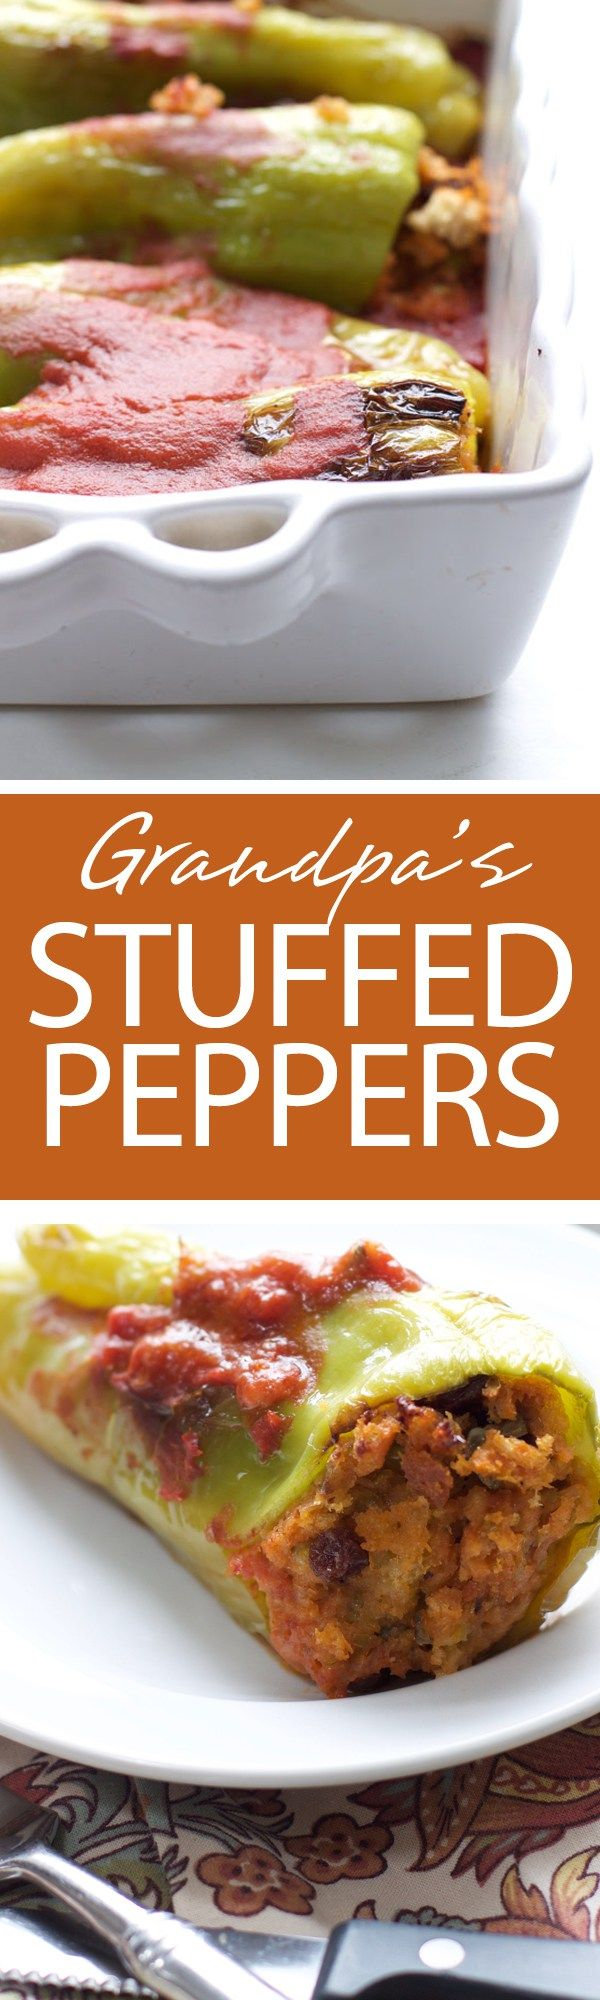 Grandpa's Stuffed Peppers | Grandpa's Stuffed Peppers are a delicacy. A cubanelle pepper stuffed with ciabatta bread, capers, raisins, cheese, and anchovies are sure to delight | forkknifeandlove.com